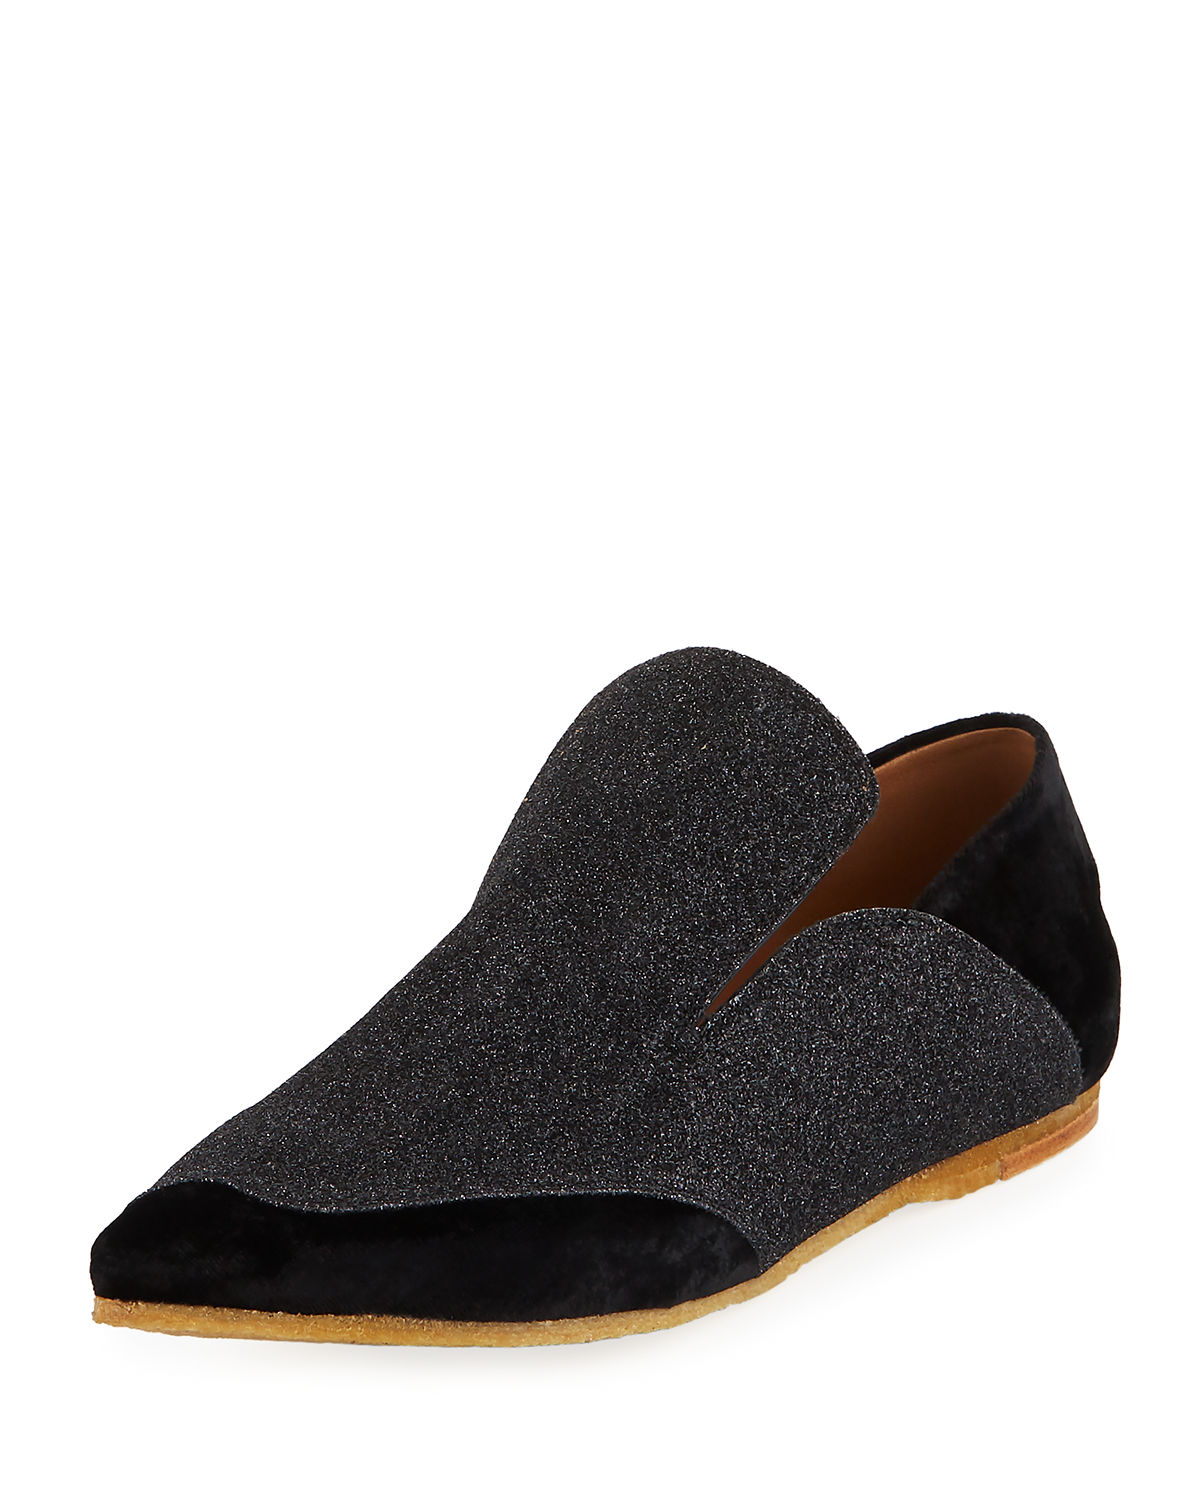 Dries Van Noten Glitter Pointed-Toe Loafers free shipping fake cheap price cost mr2abd4